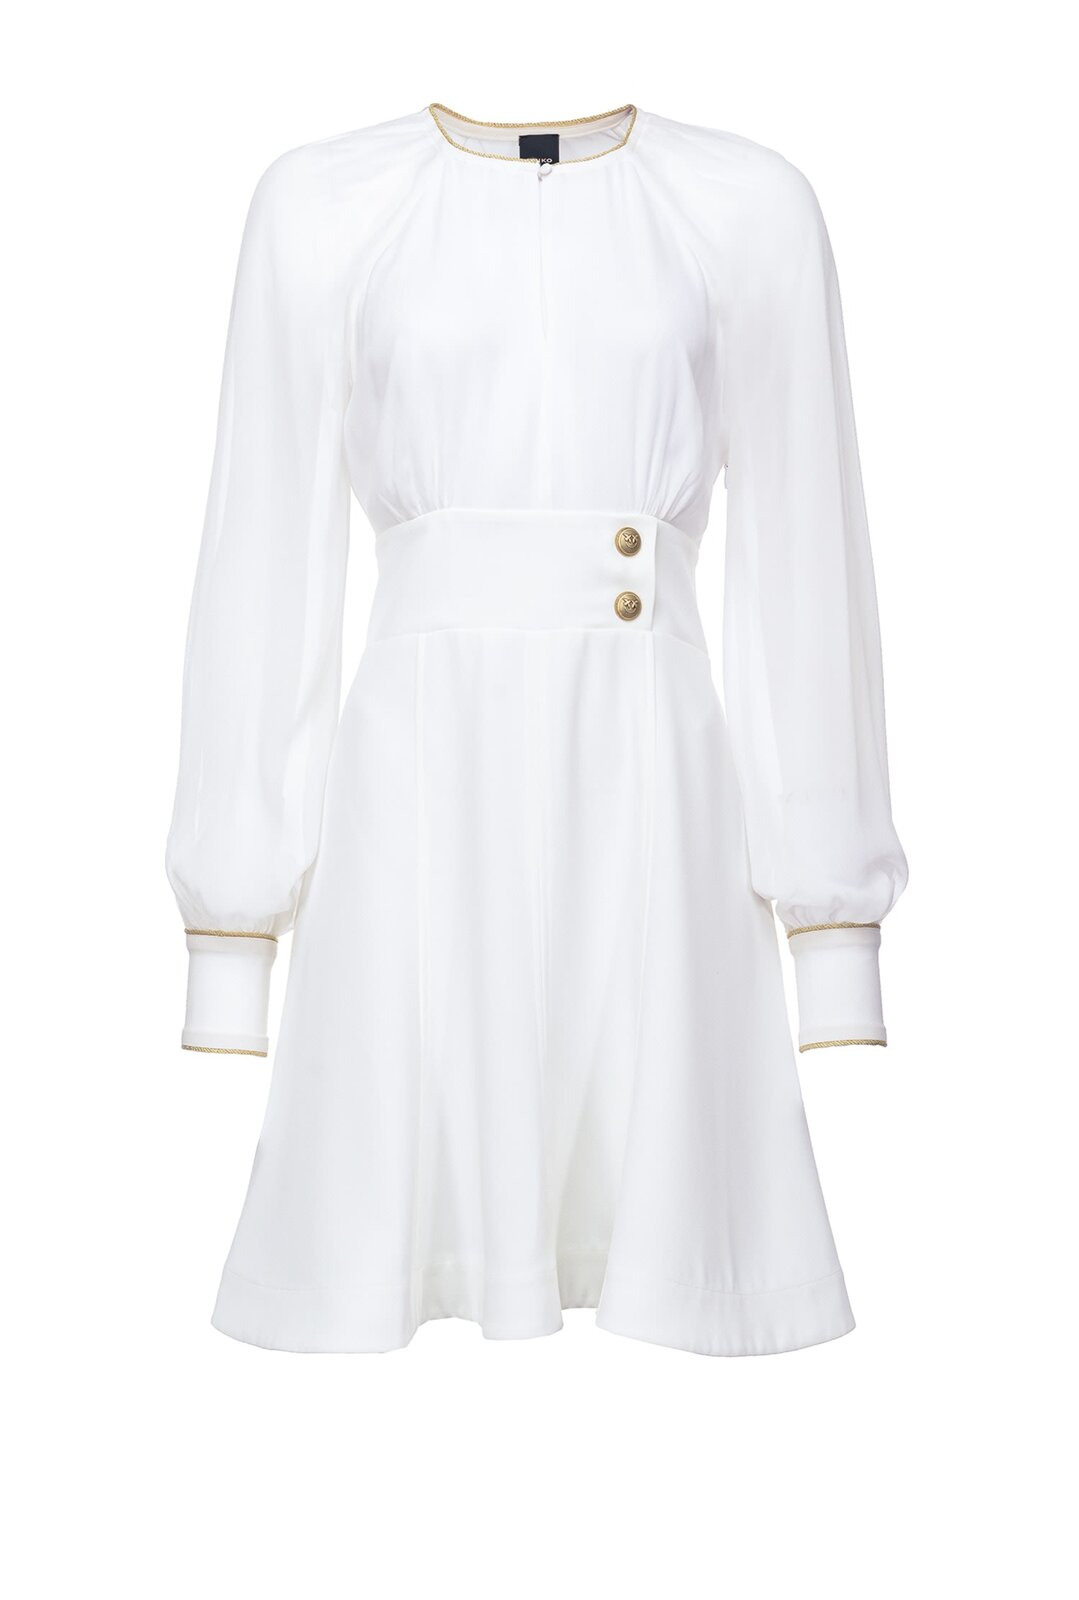 Dress With Golden Piping - Pinko